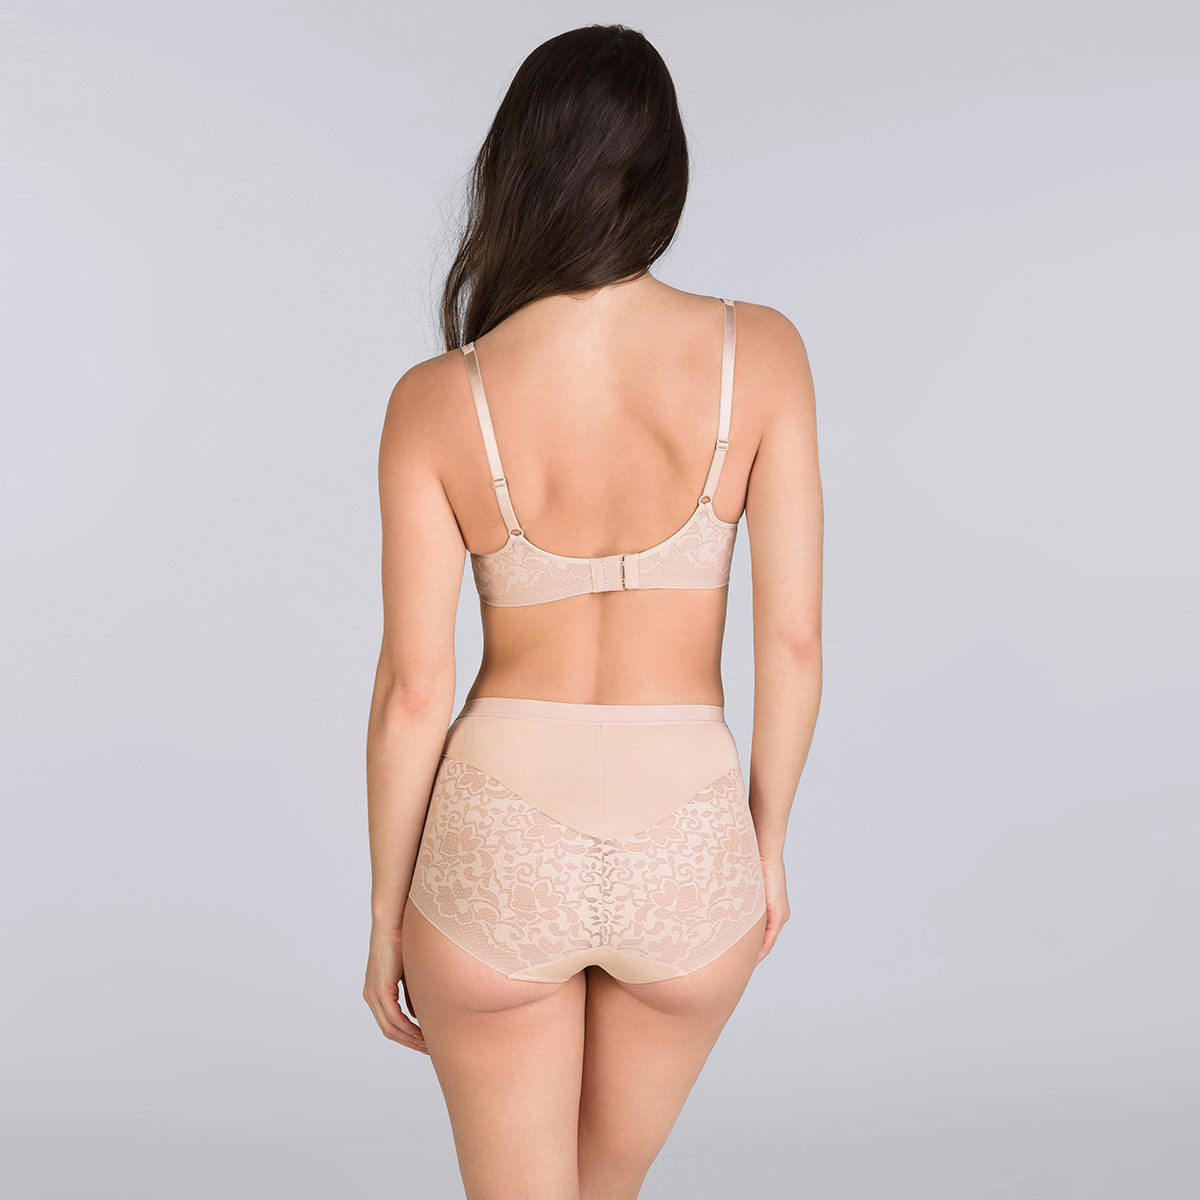 Beige Maxi brief - Expert in Silhouette-PLAYTEX